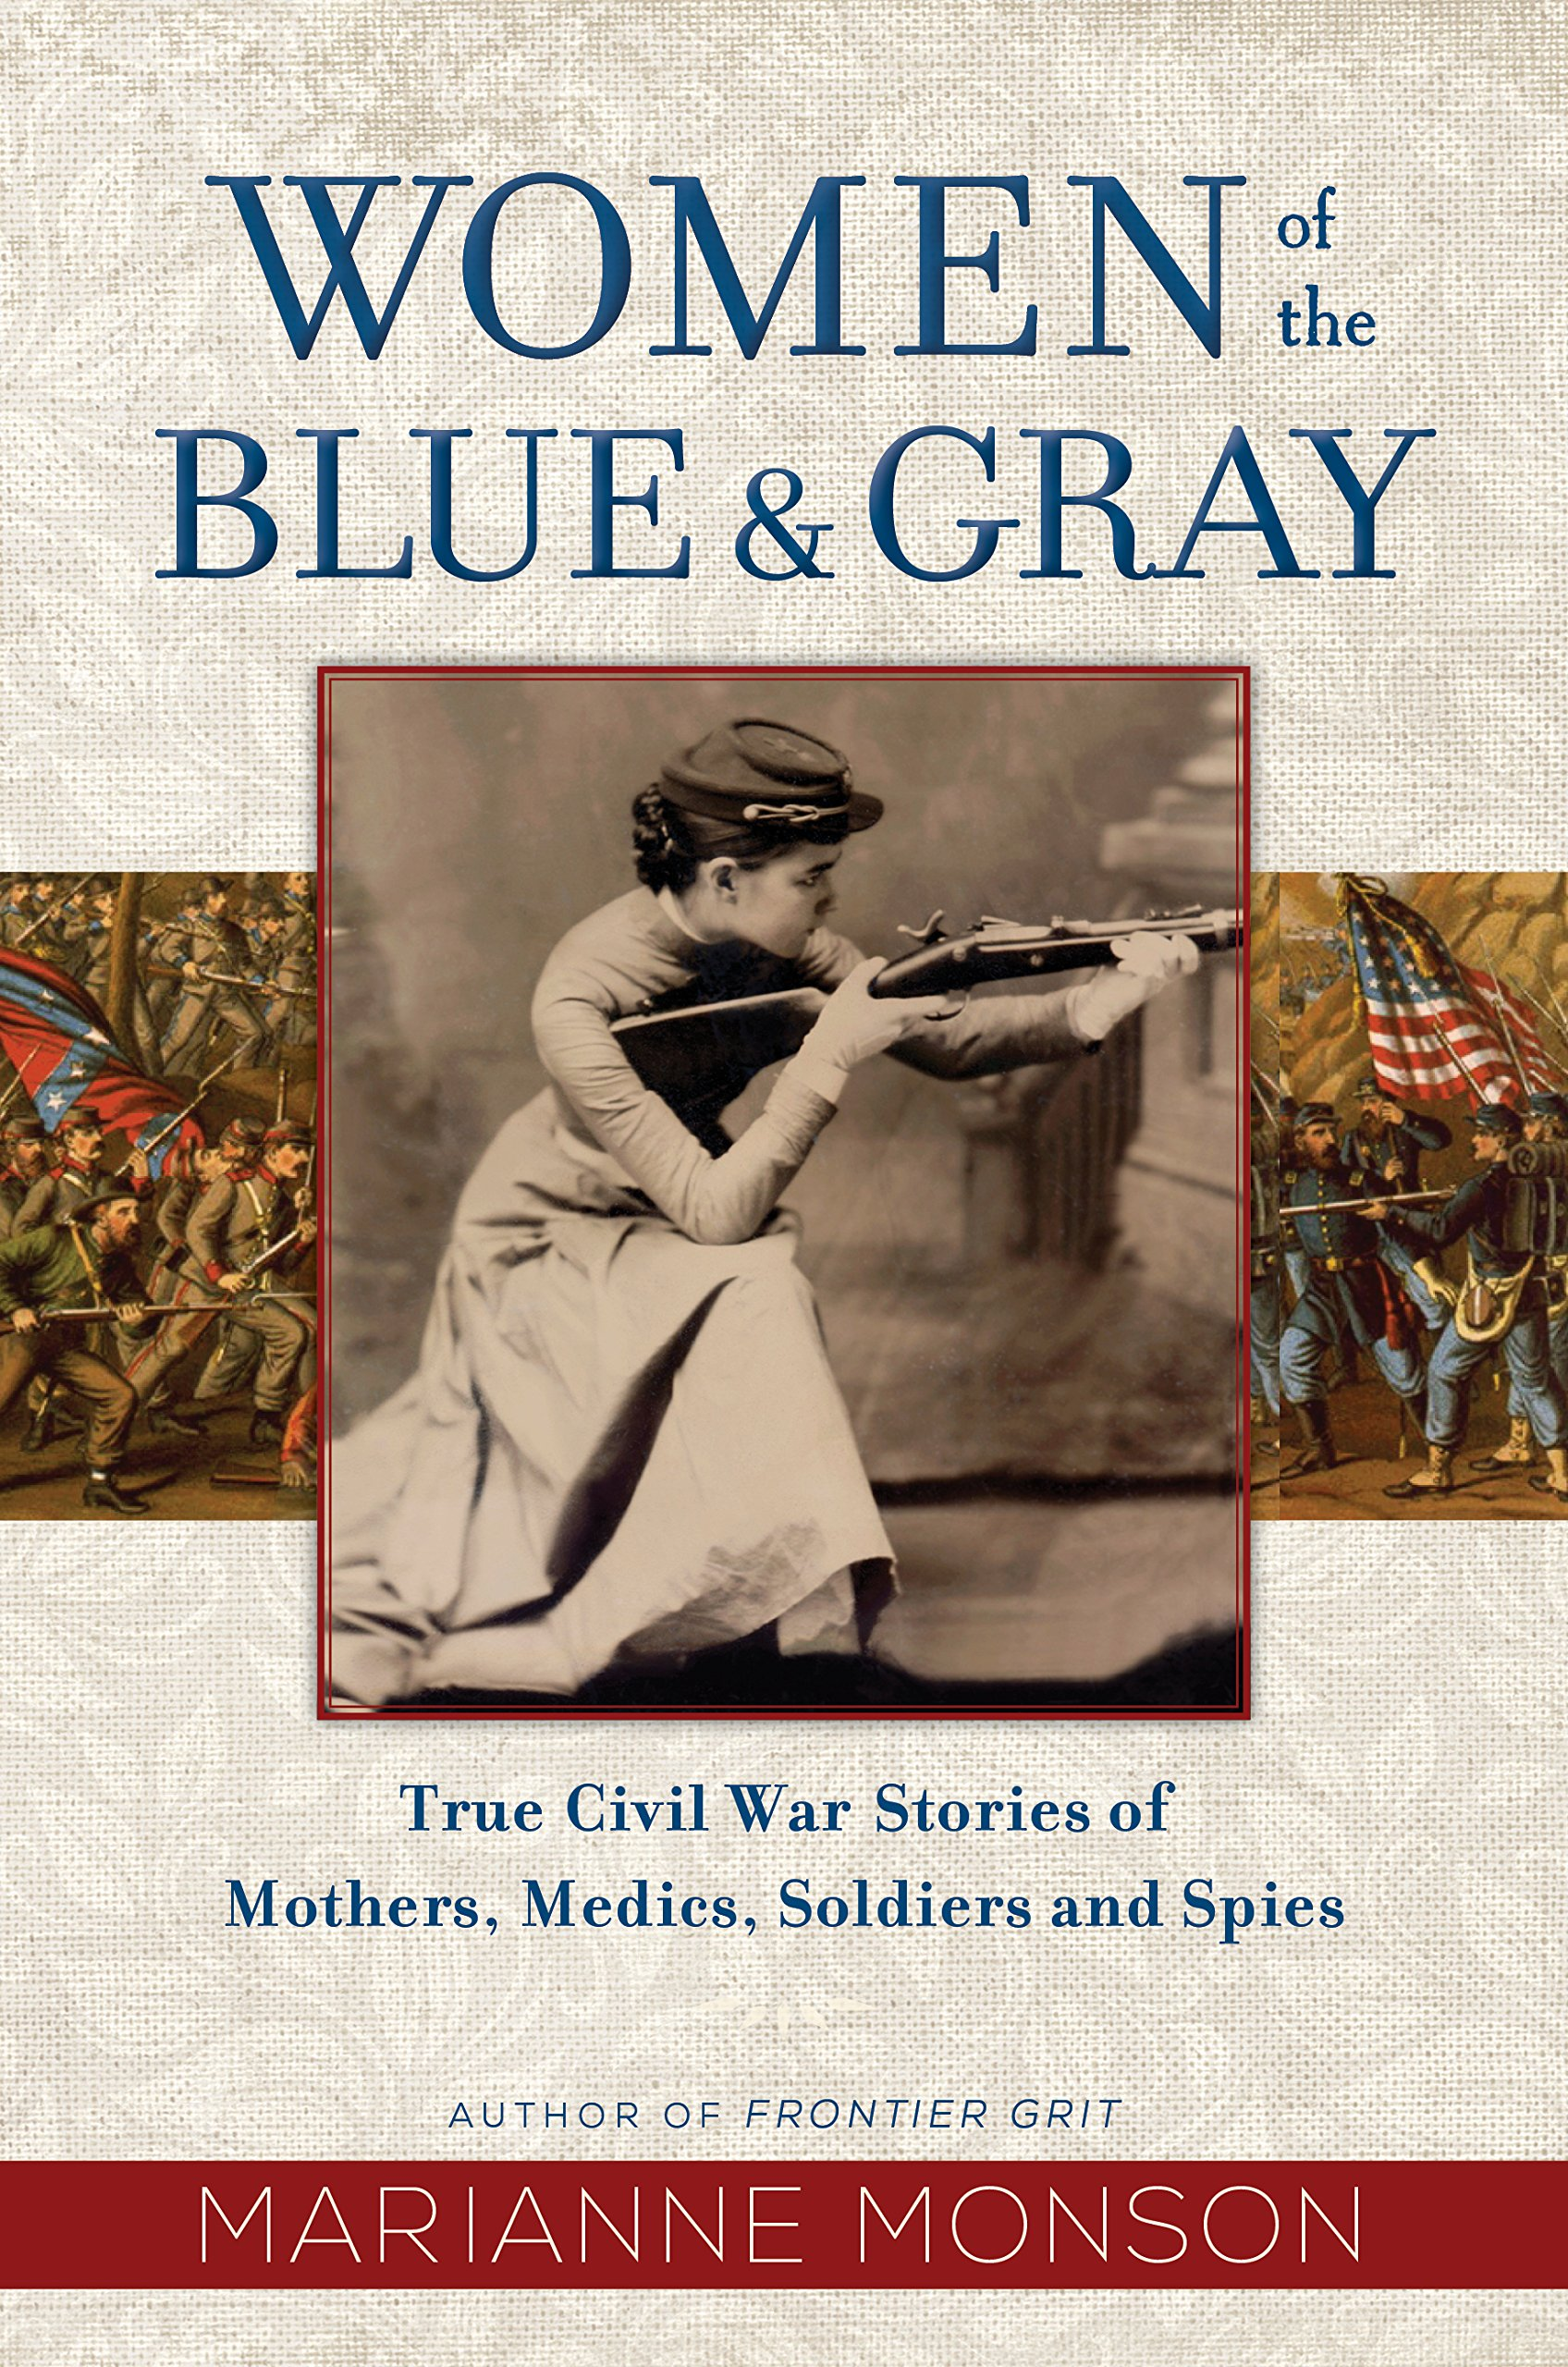 Women of the blue & gray : true Civil War stories of mothers,                 medics, soldiers, and spies / by Marianne Monson